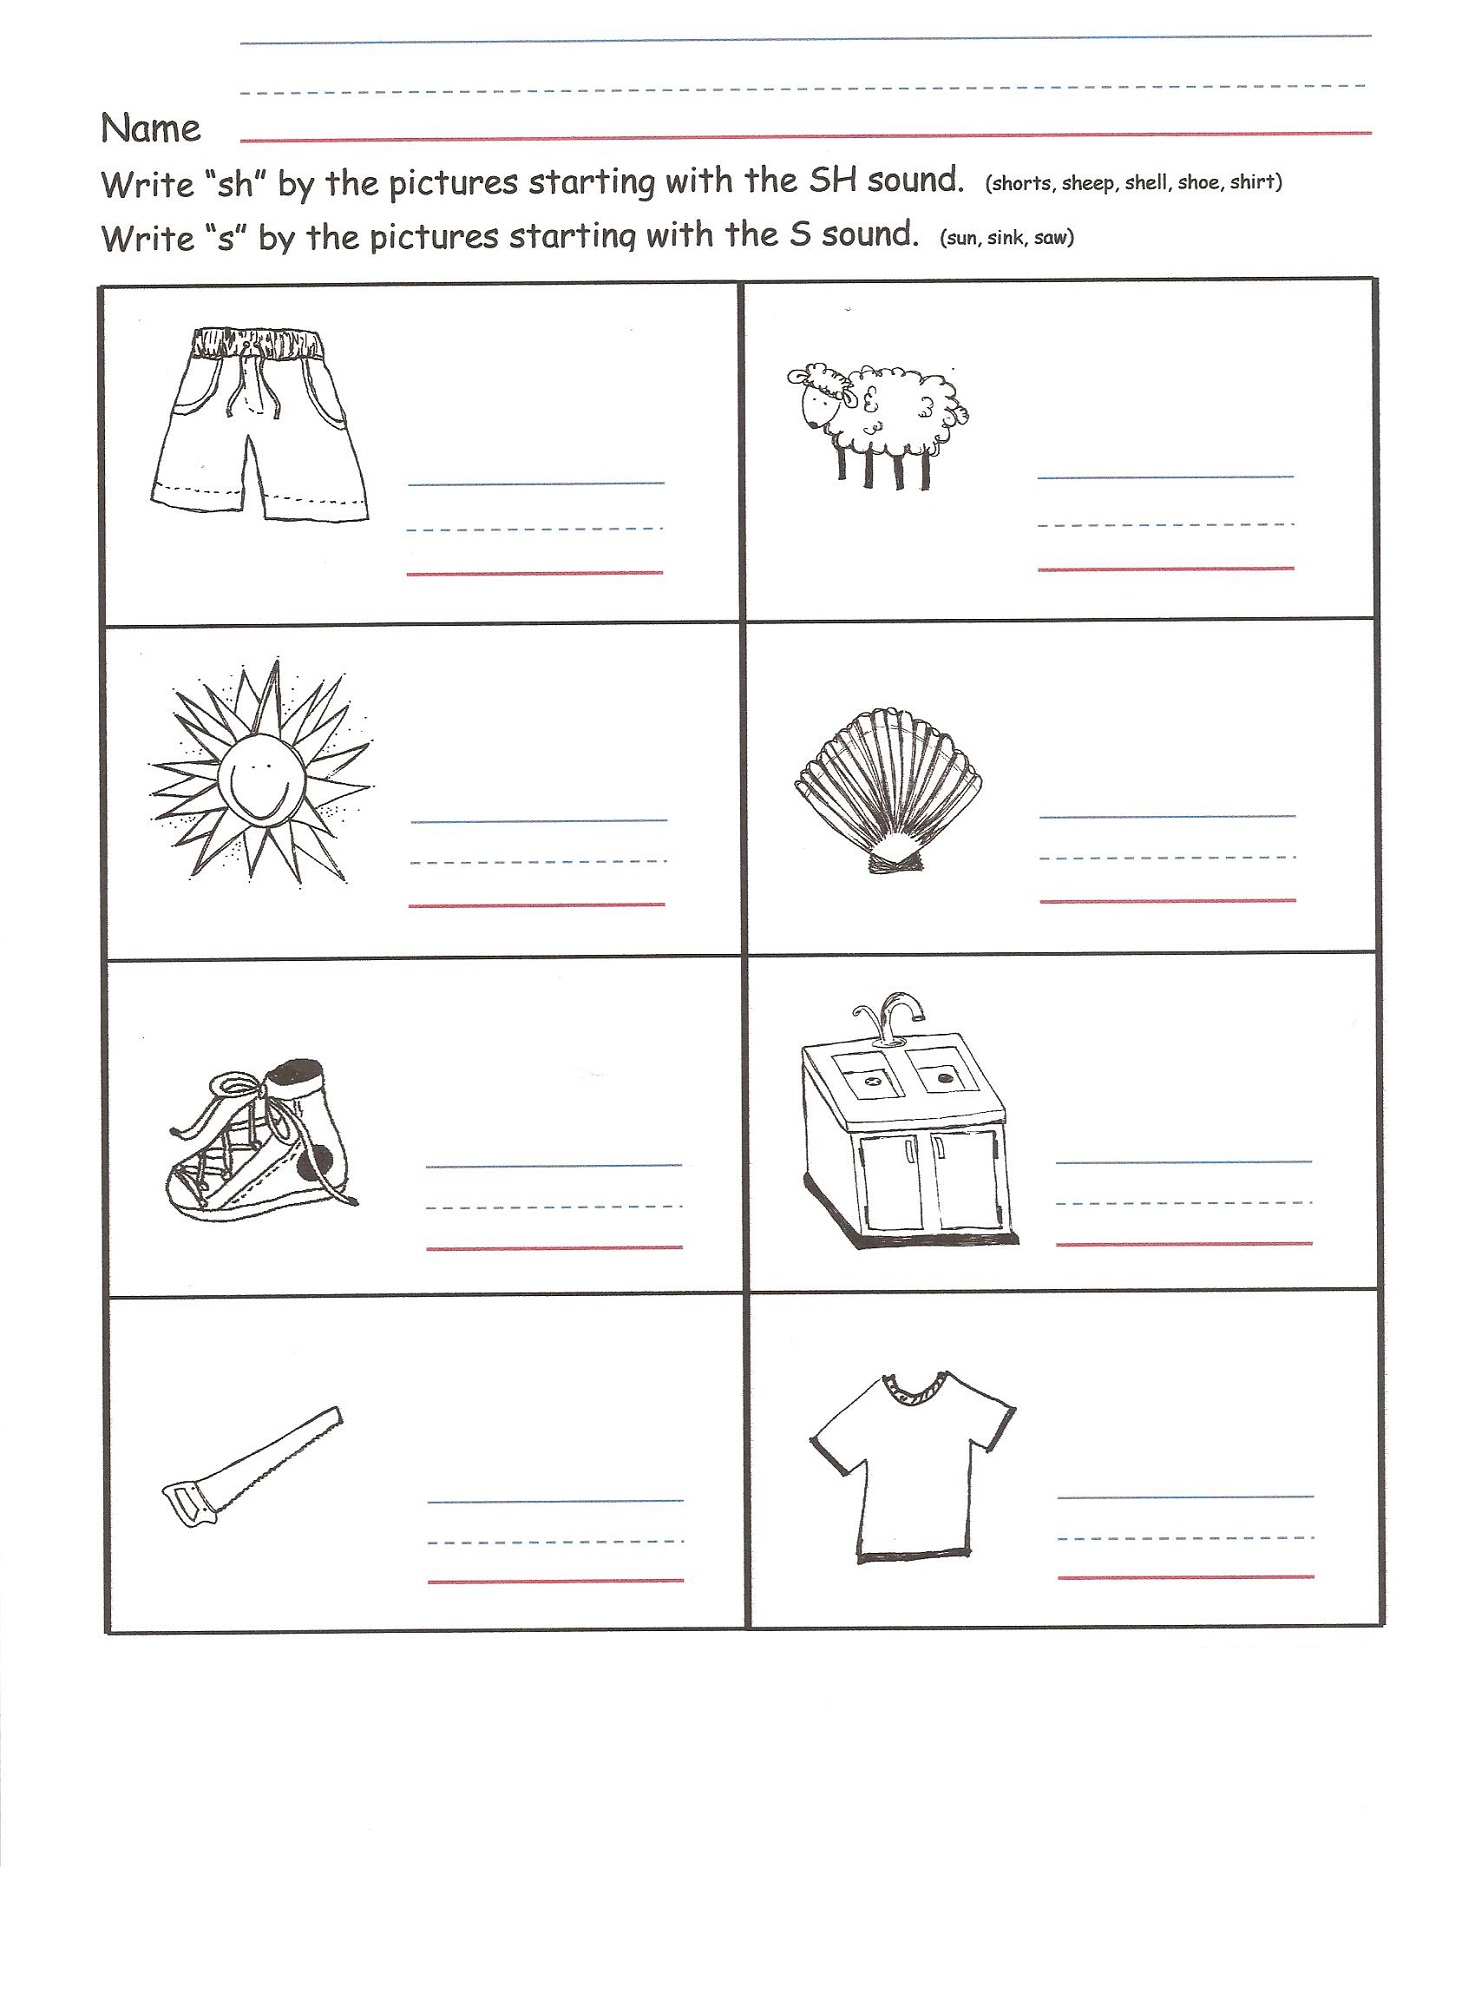 Worksheets That Work